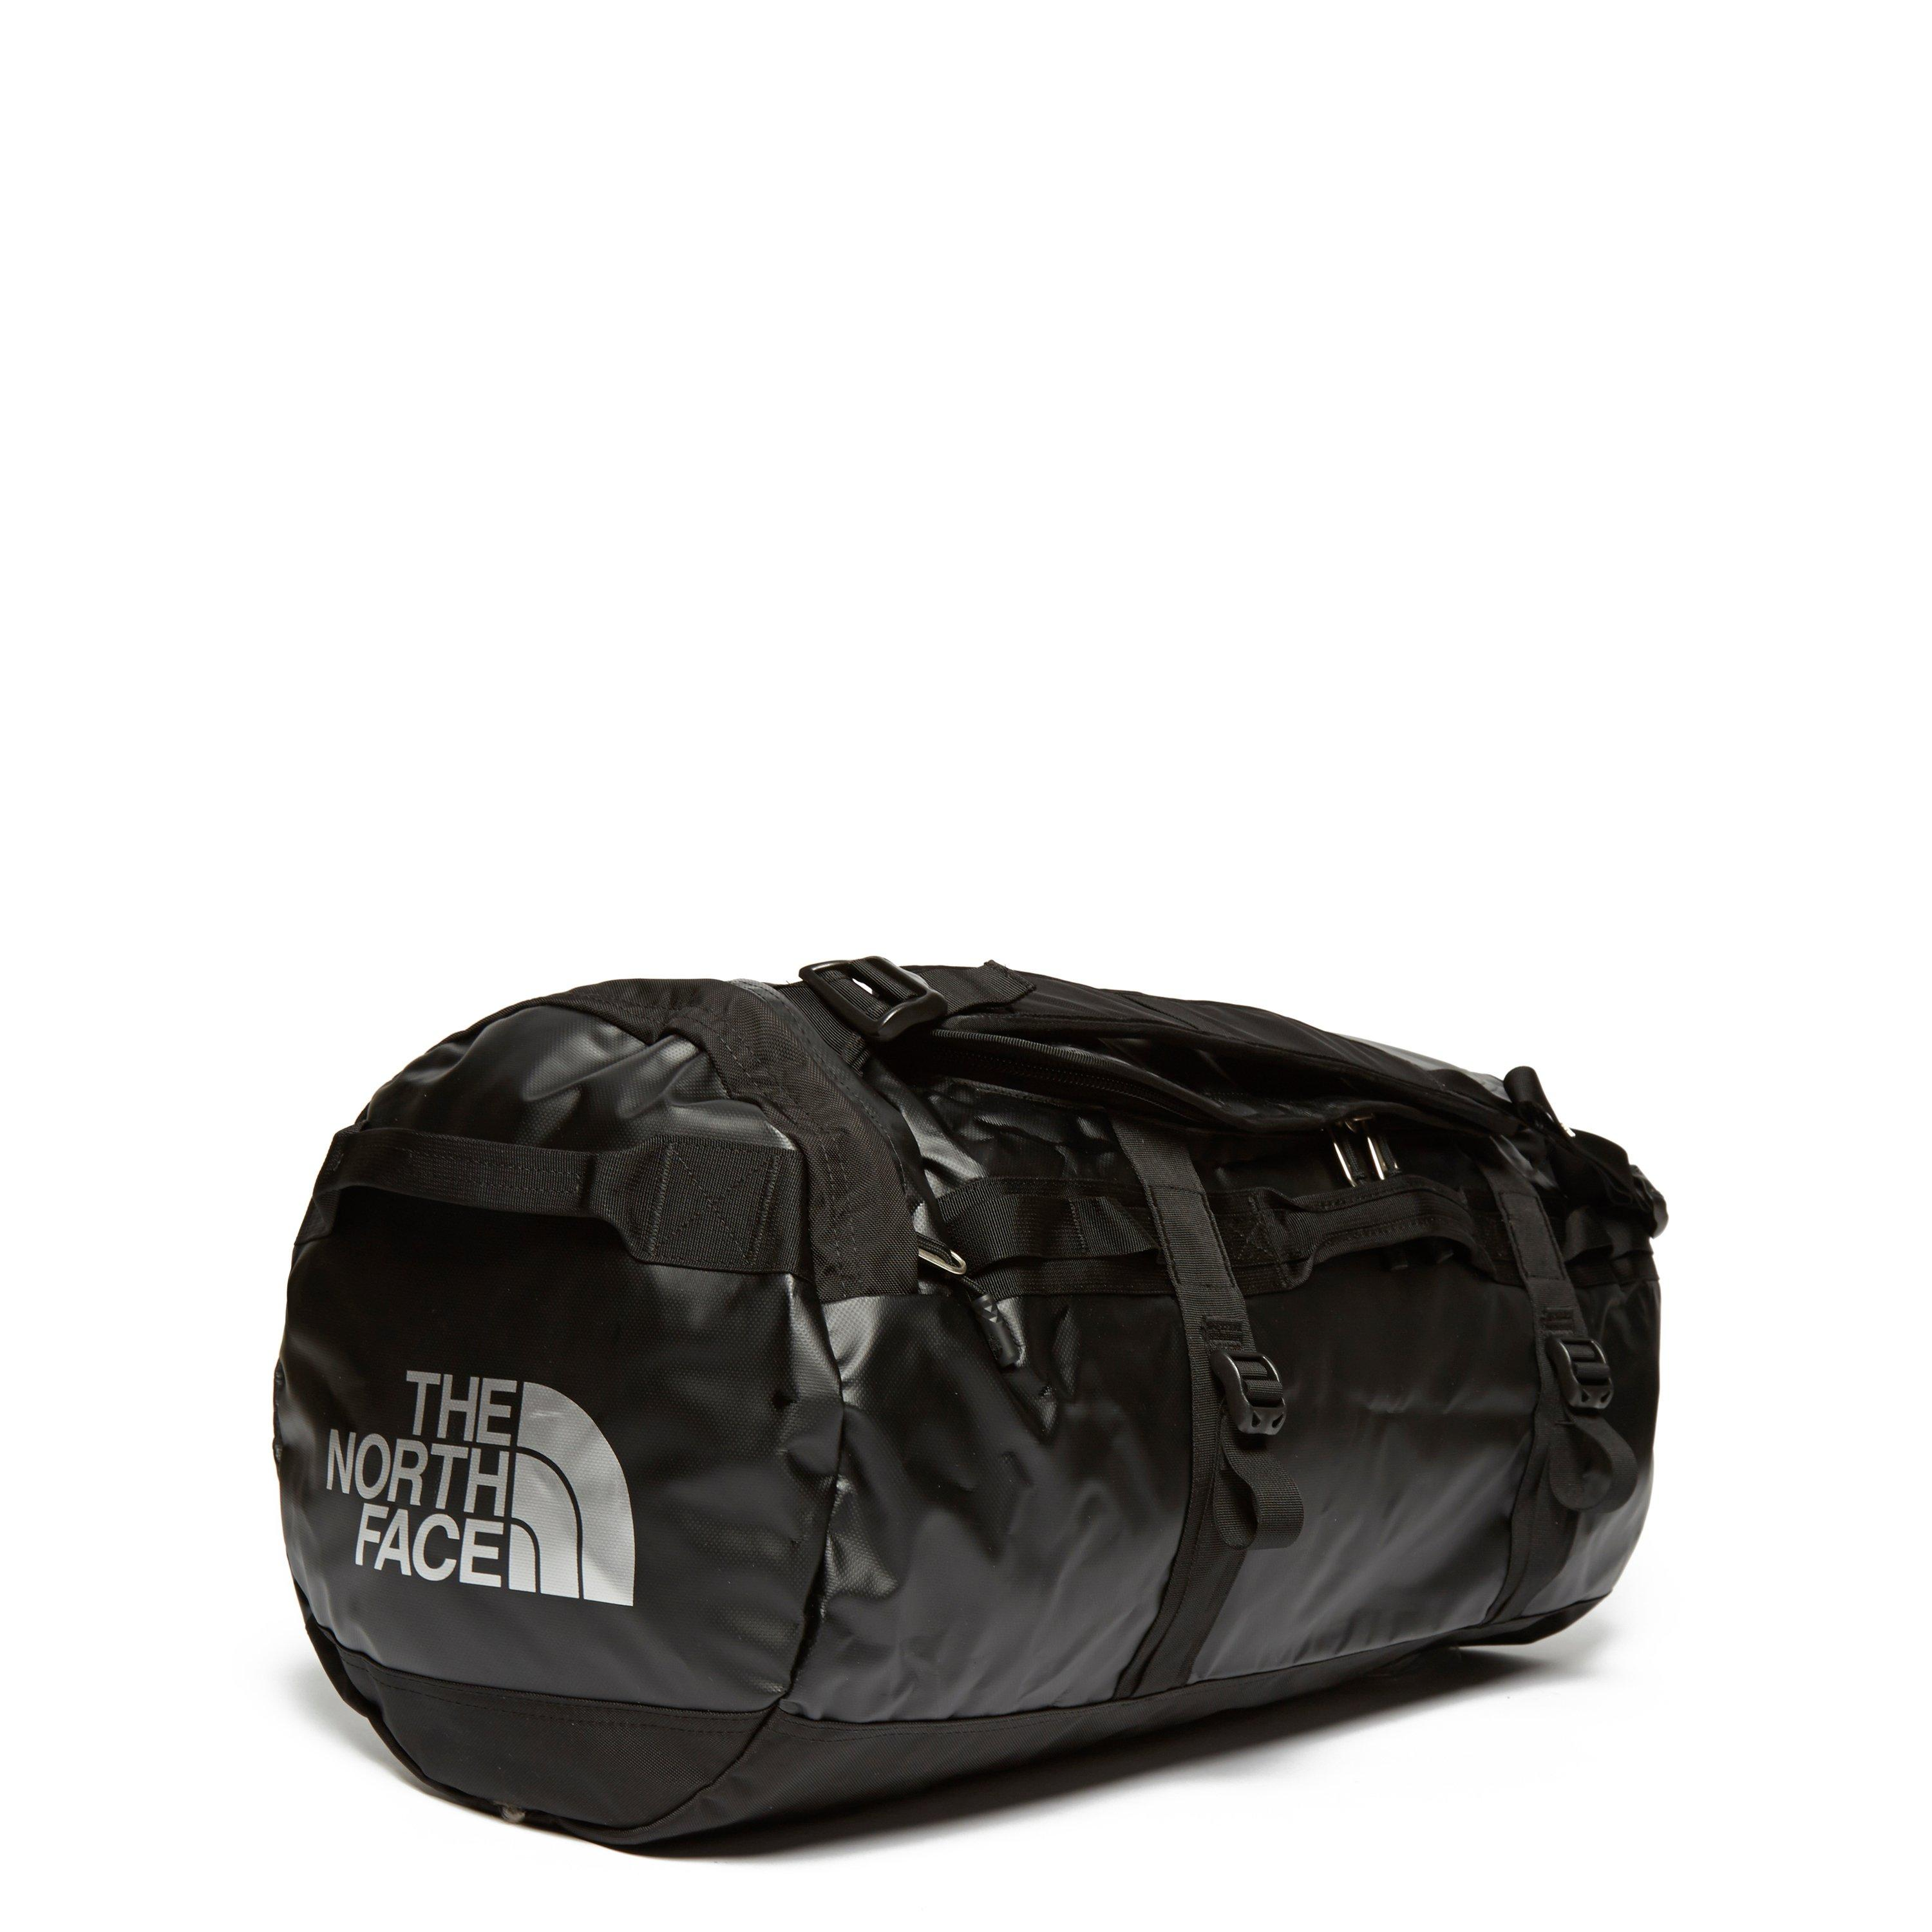 THE NORTH FACE Basecamp Duffel Bag Small